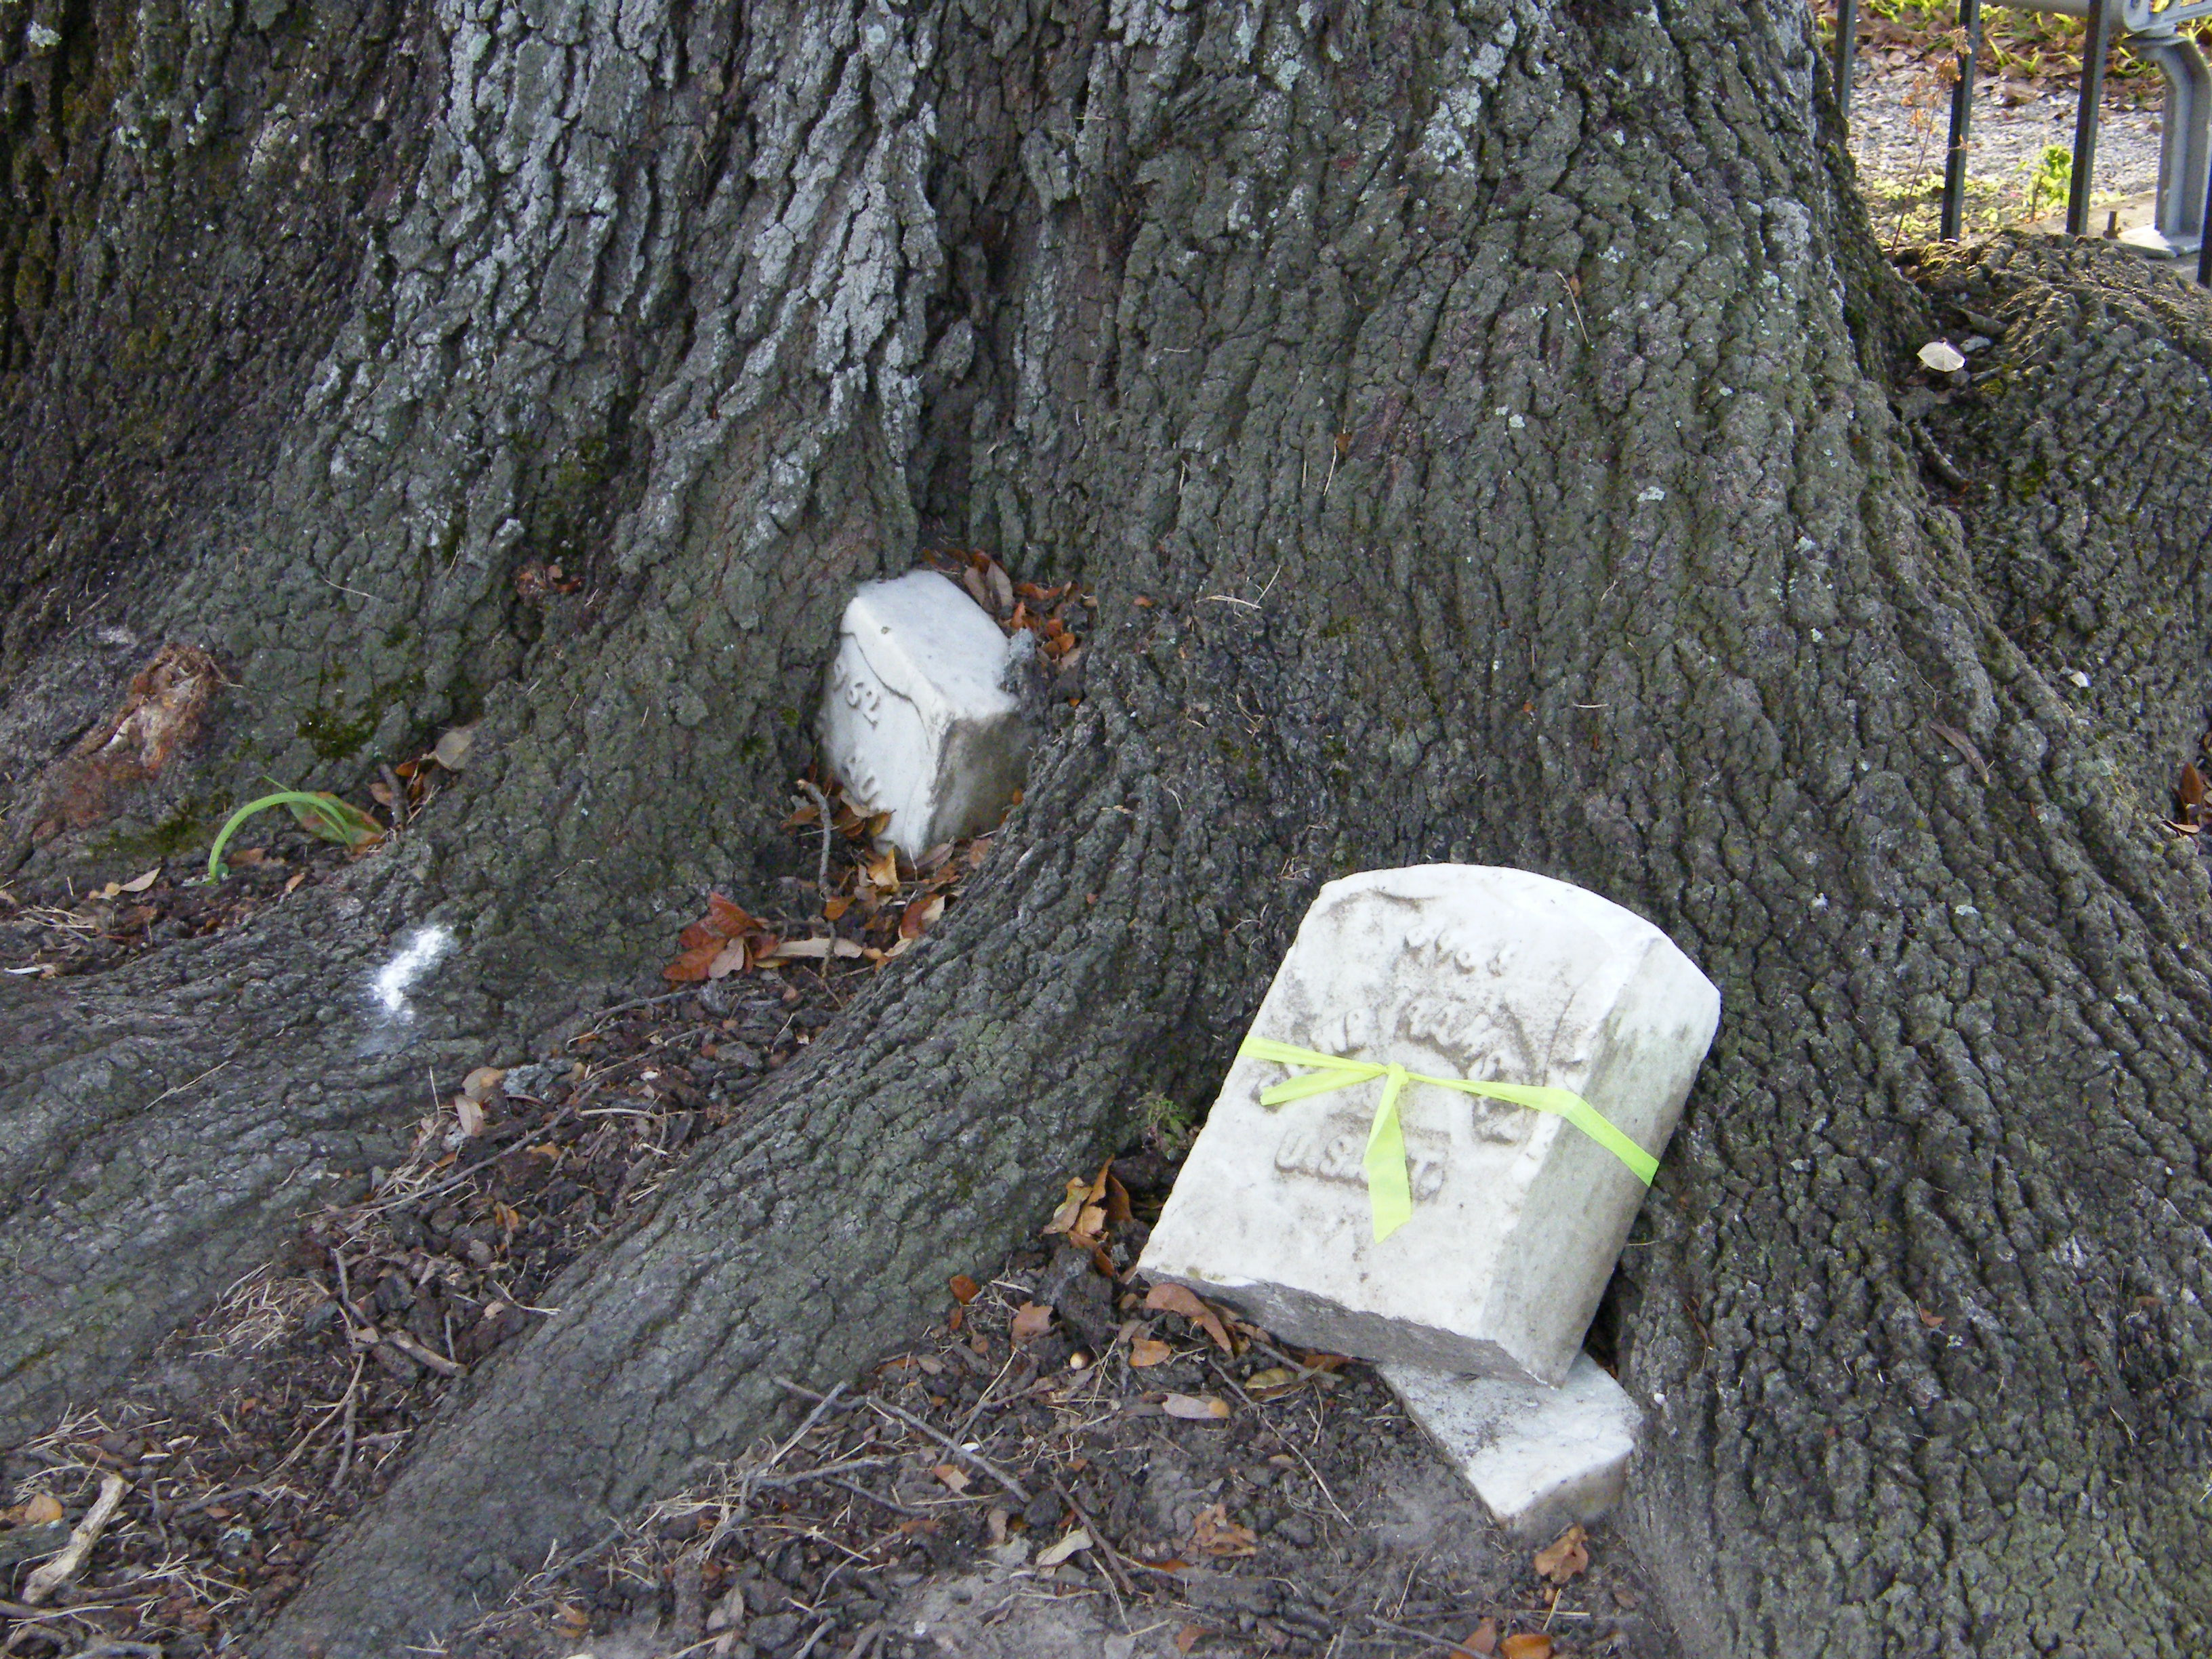 Sadly, many of the markers have been consumed by oaks over time and most are for soldiers unknown but to god.